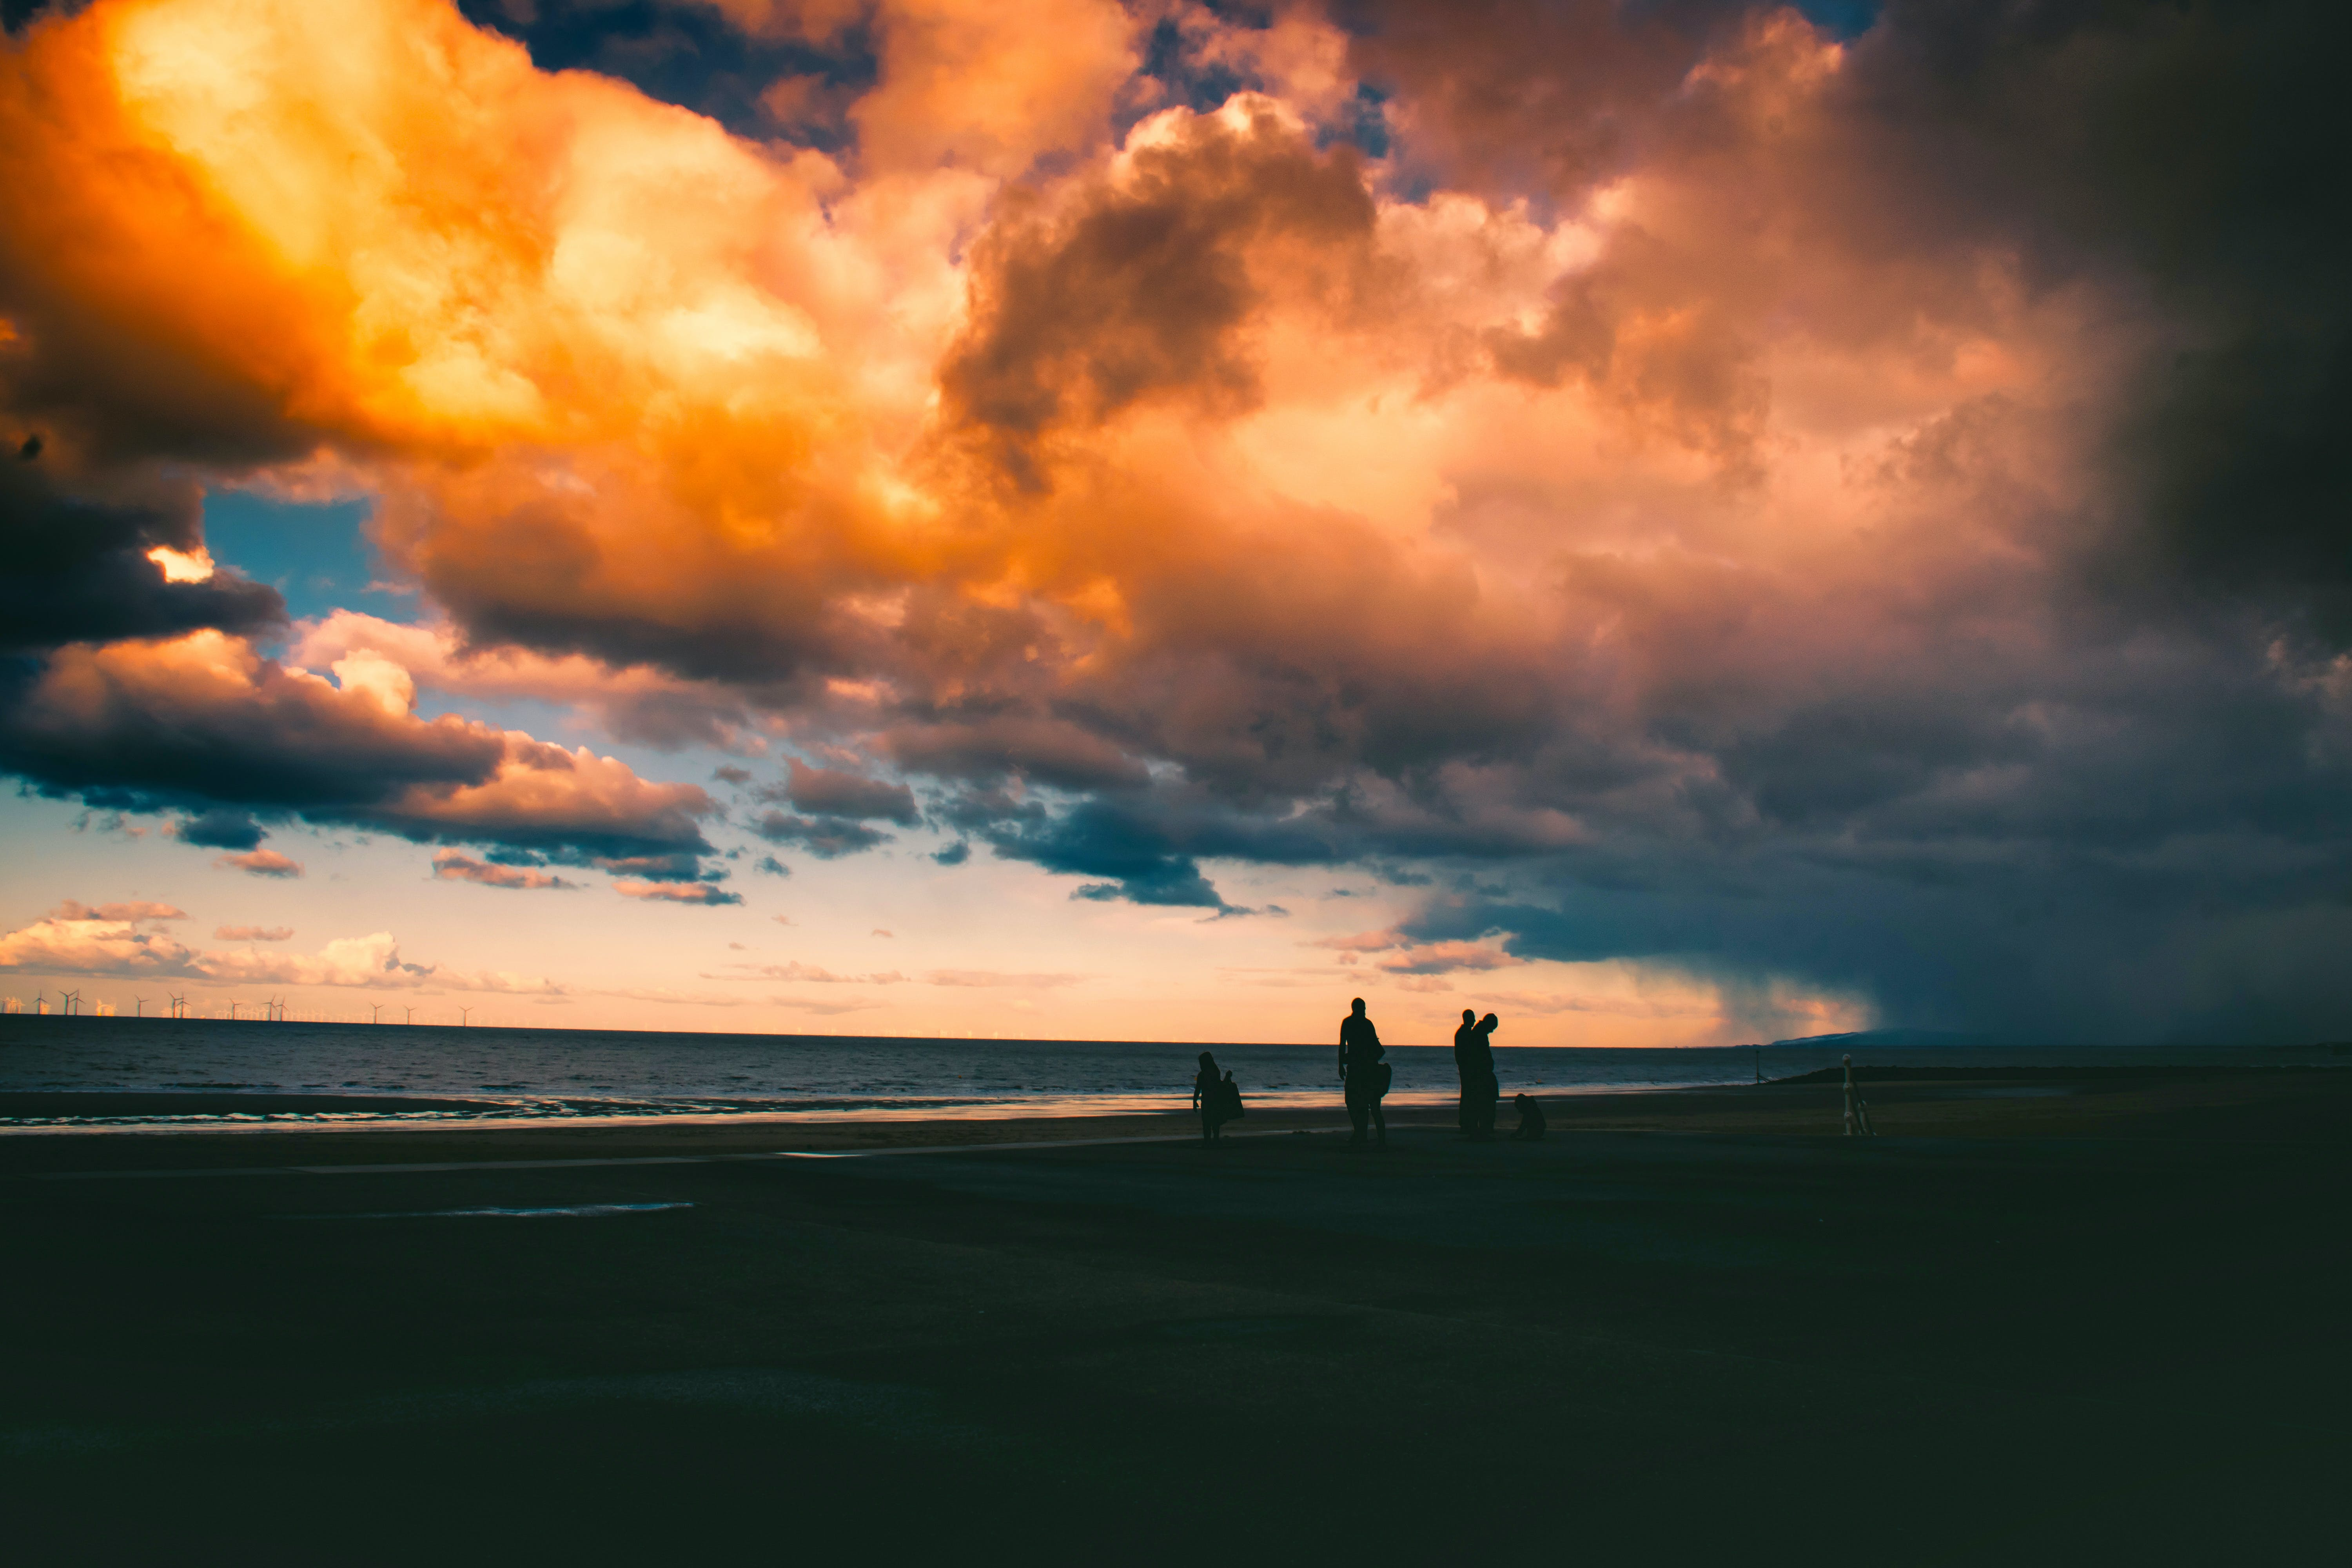 Silhouette Of People On Shore Under Cloudy Sky